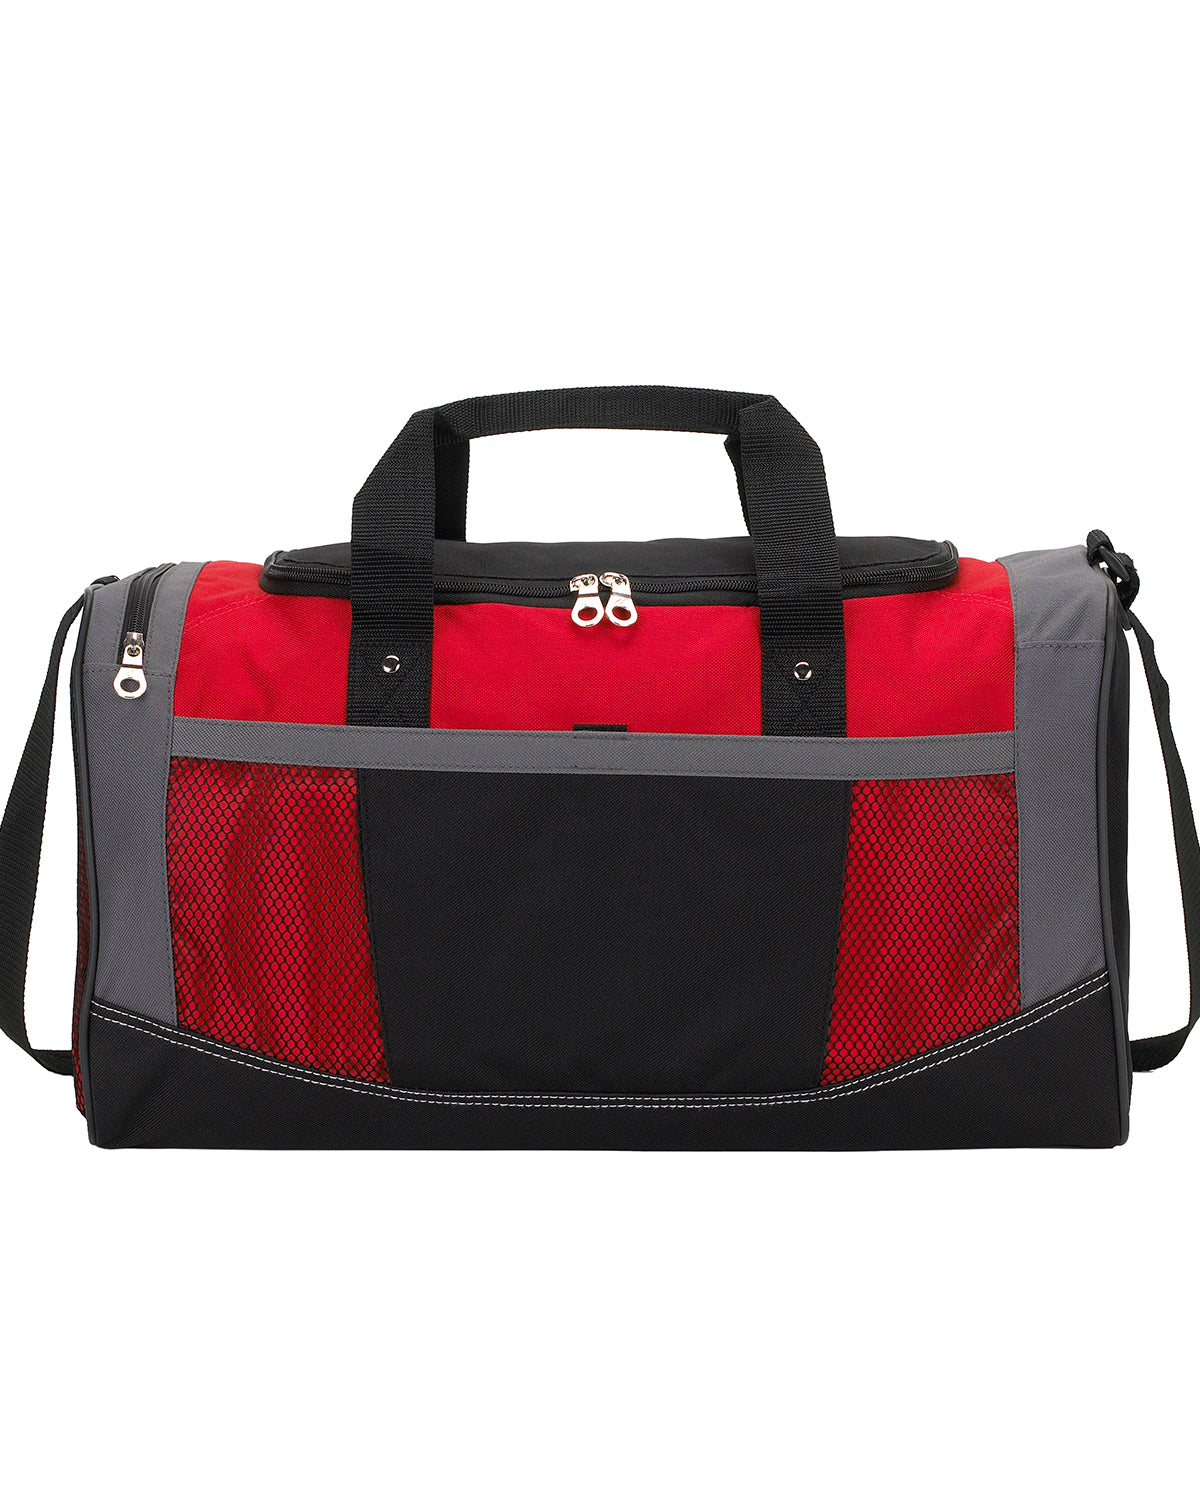 TF Gemline Flex Sport Bag